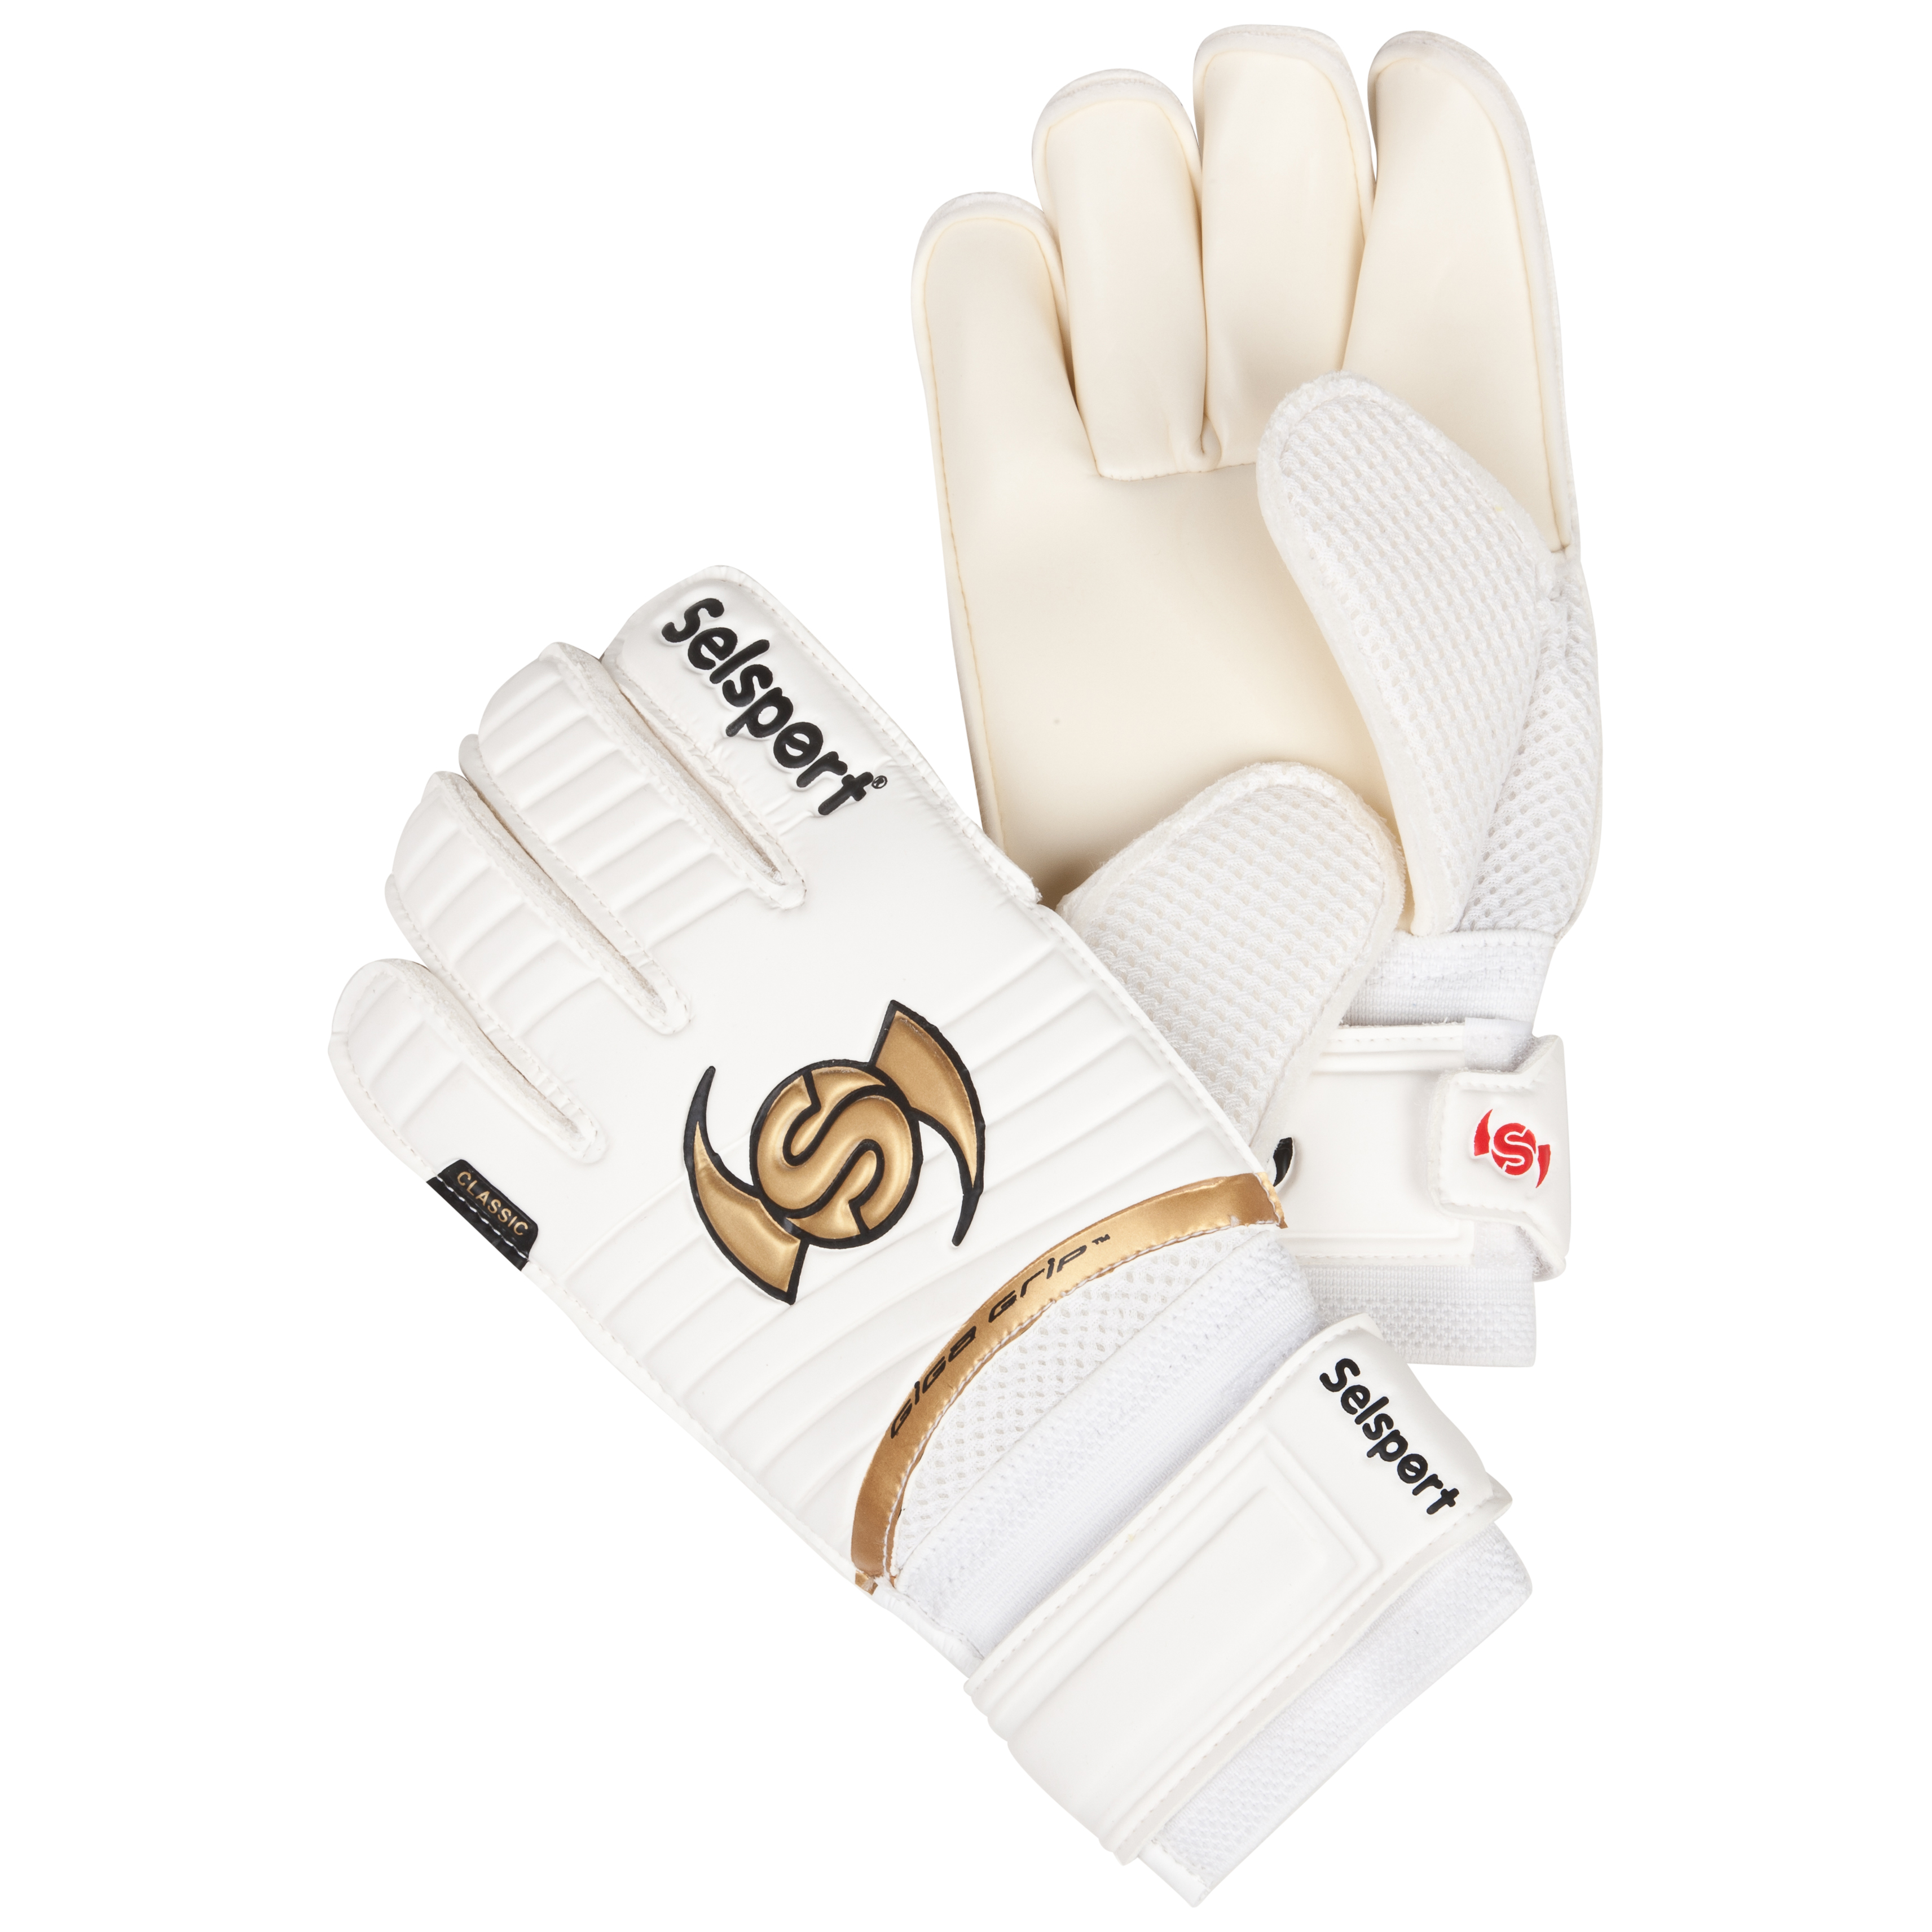 Selsport Wrappa Replica Goalkeeper Gloves - Kids